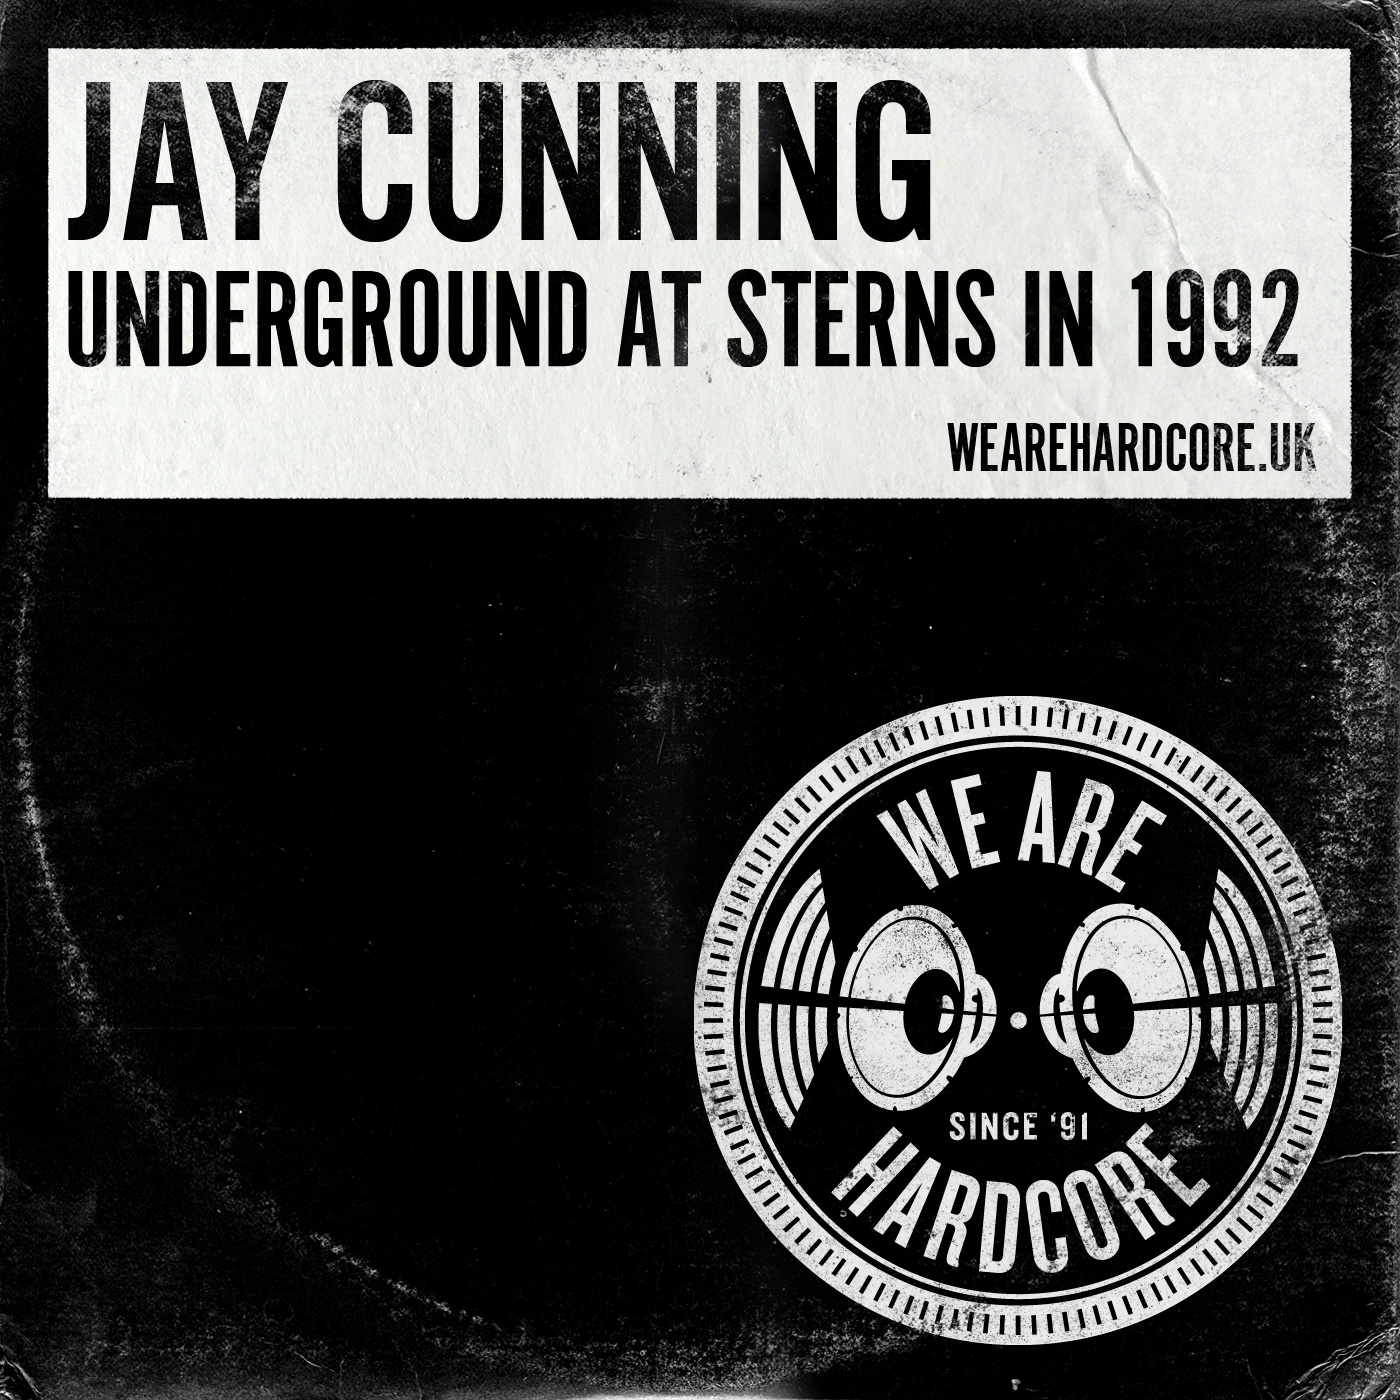 Sterns Underground 1992 Tribute - Jay Cunning WE ARE HARDCORE show